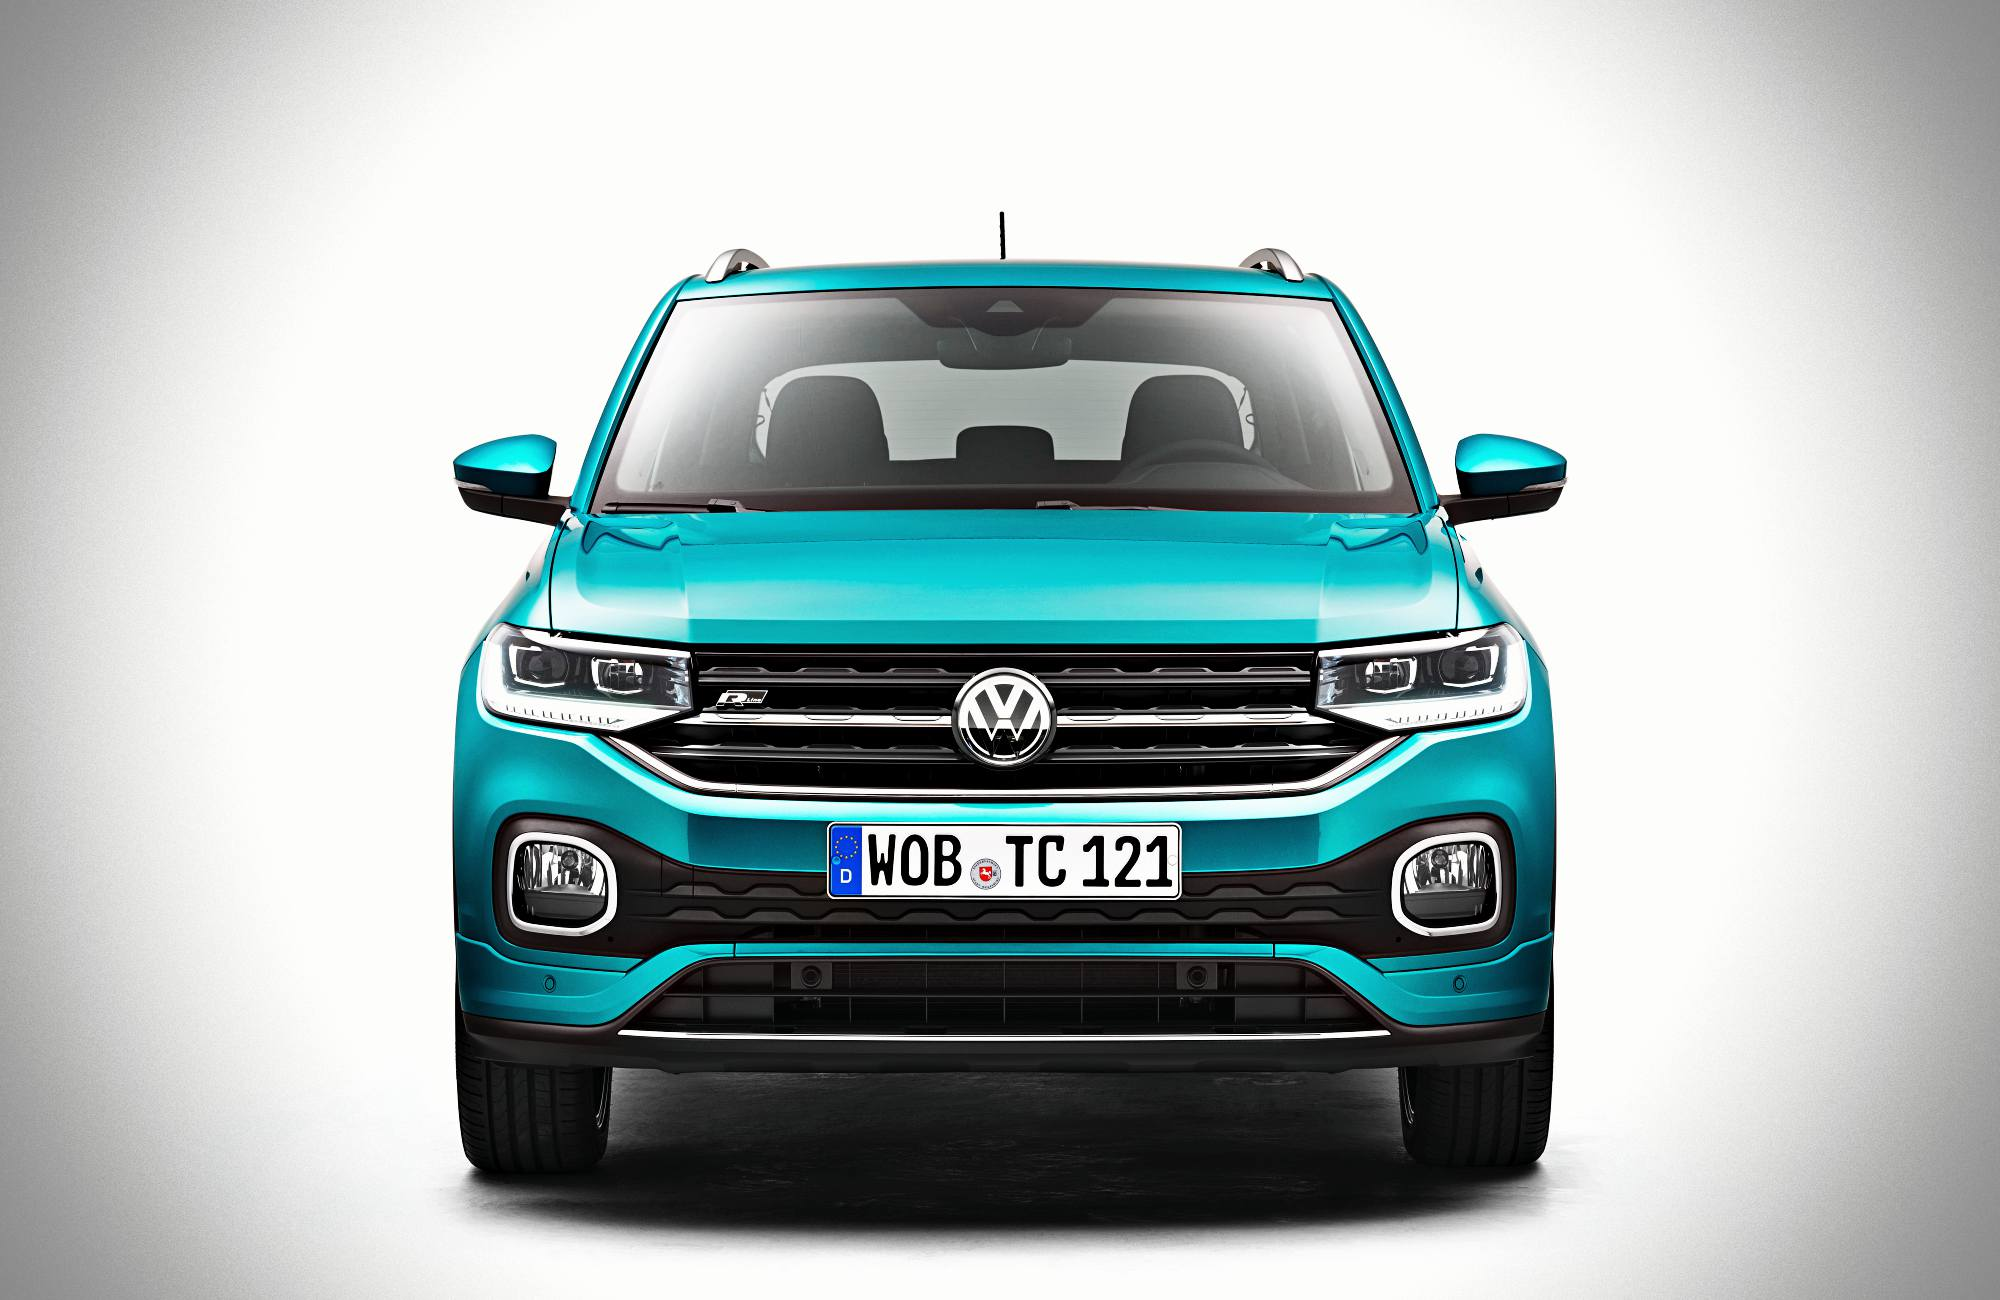 vw t cross dieses suv wird sogar dem golf gef hrlich. Black Bedroom Furniture Sets. Home Design Ideas